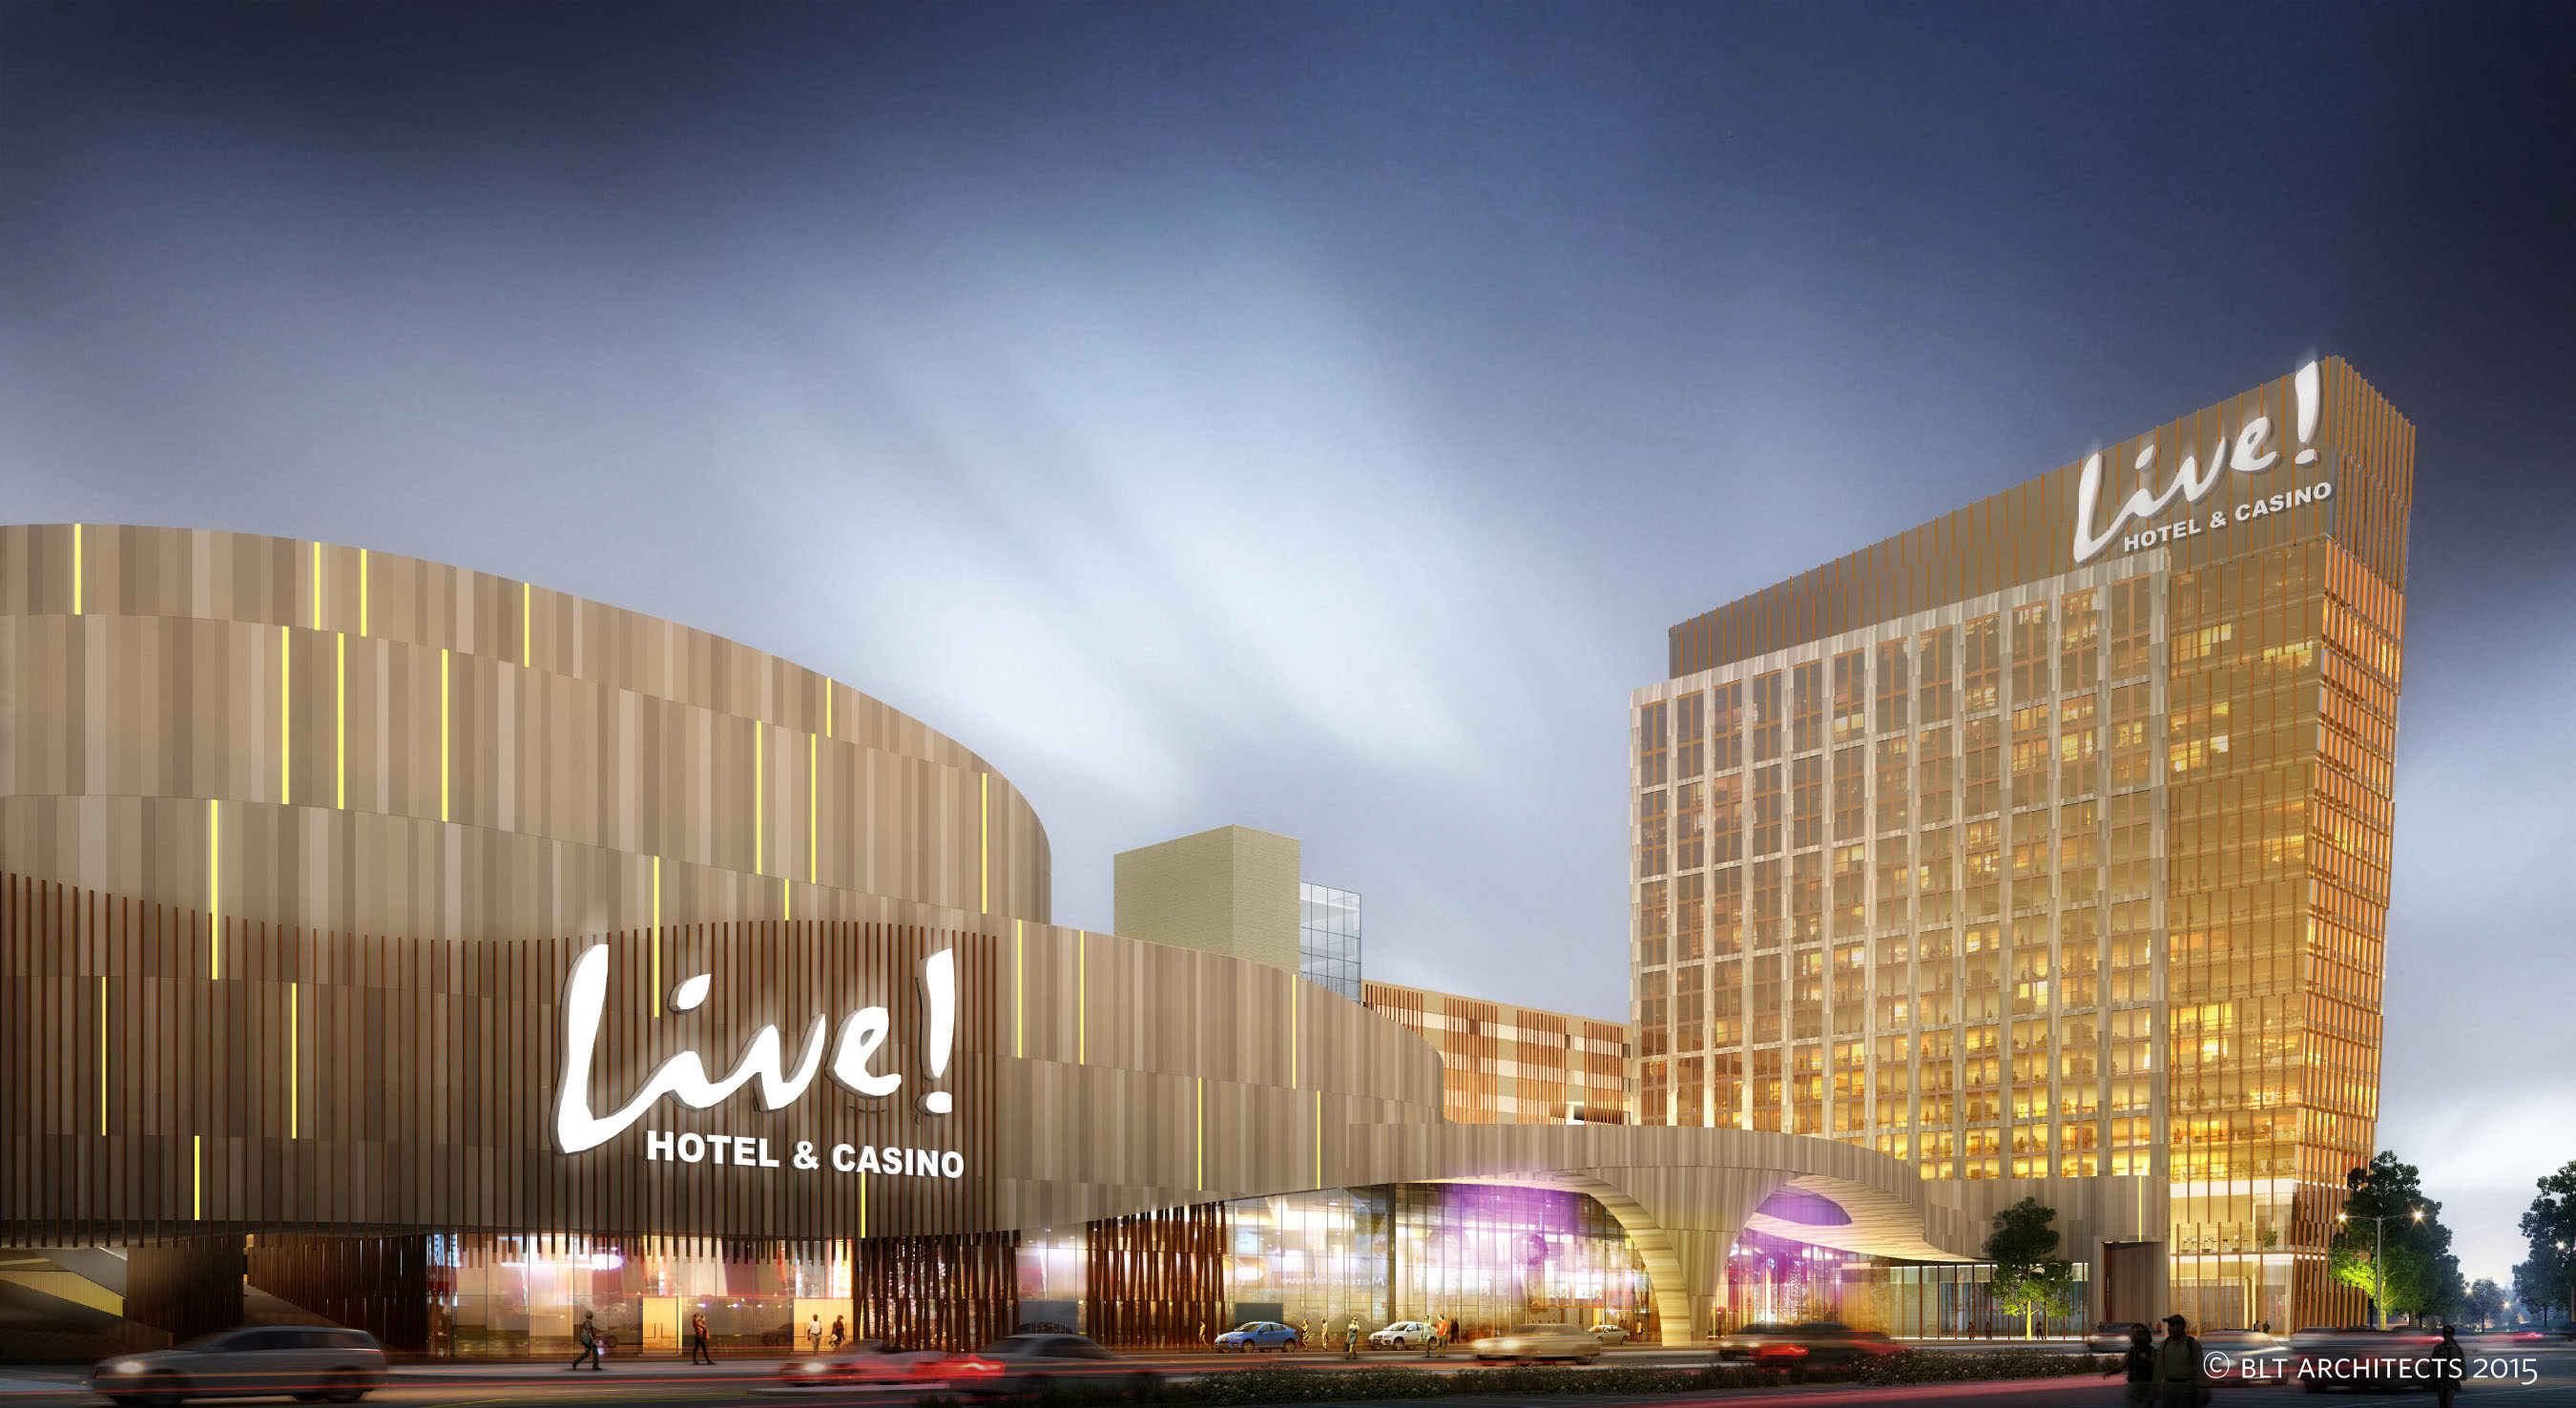 Philadelphia City Council unanimously approves zoning for the $450 million world-class Stadium District hotel & casino. Stadium Casino will bring thousands of new jobs and hundreds of millions of new tax dollars to the region.